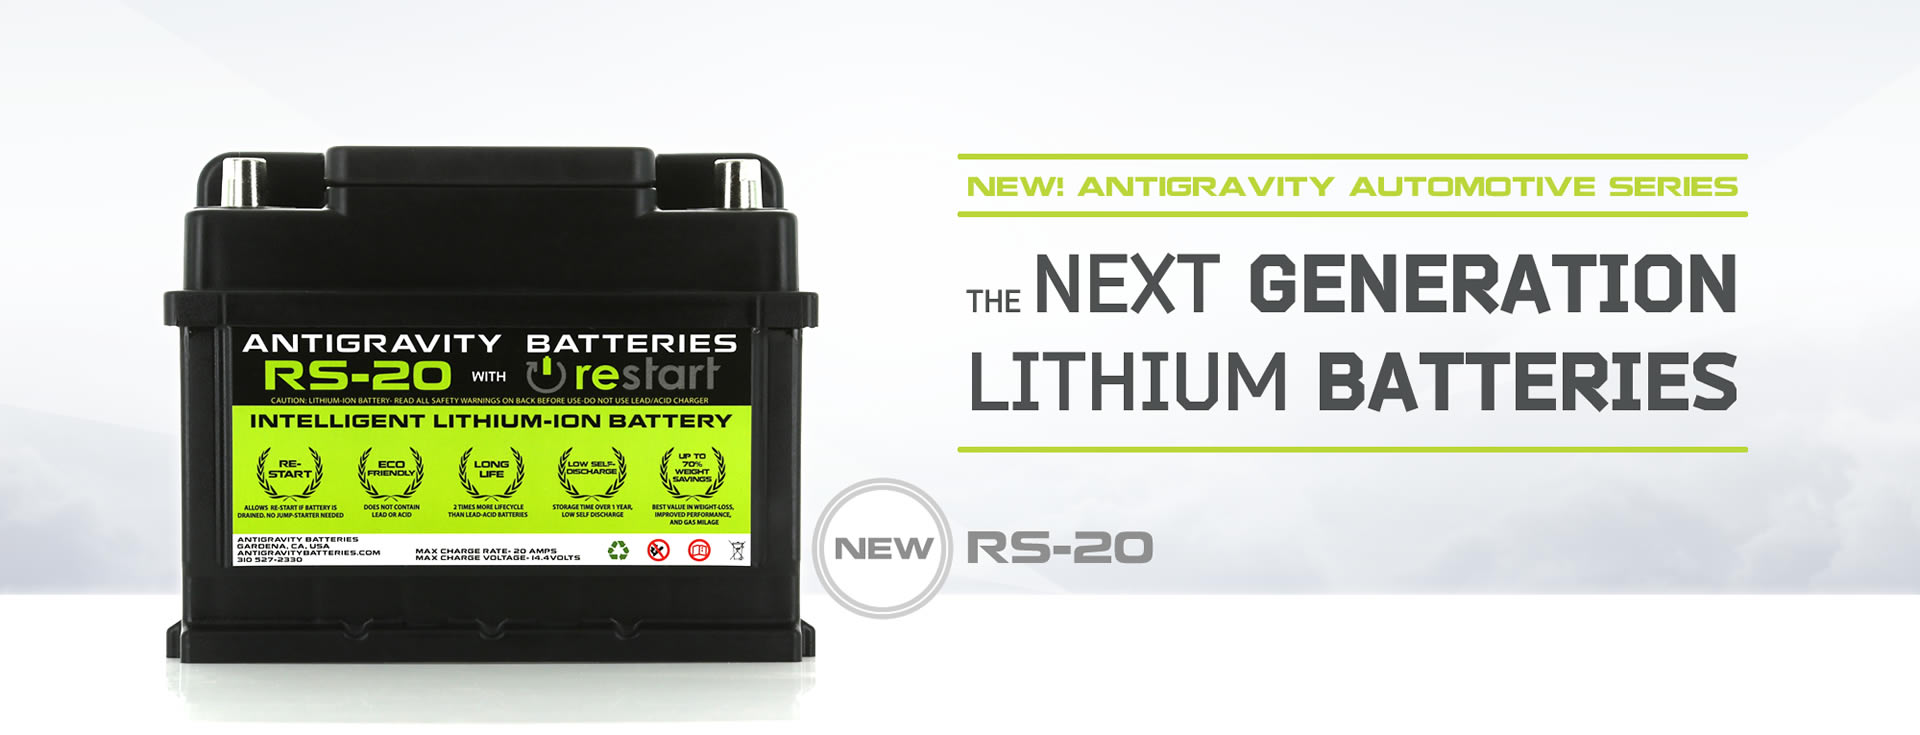 NEW! ANTIGRAVITY RS-20 LITHIUM CAR BATTERY